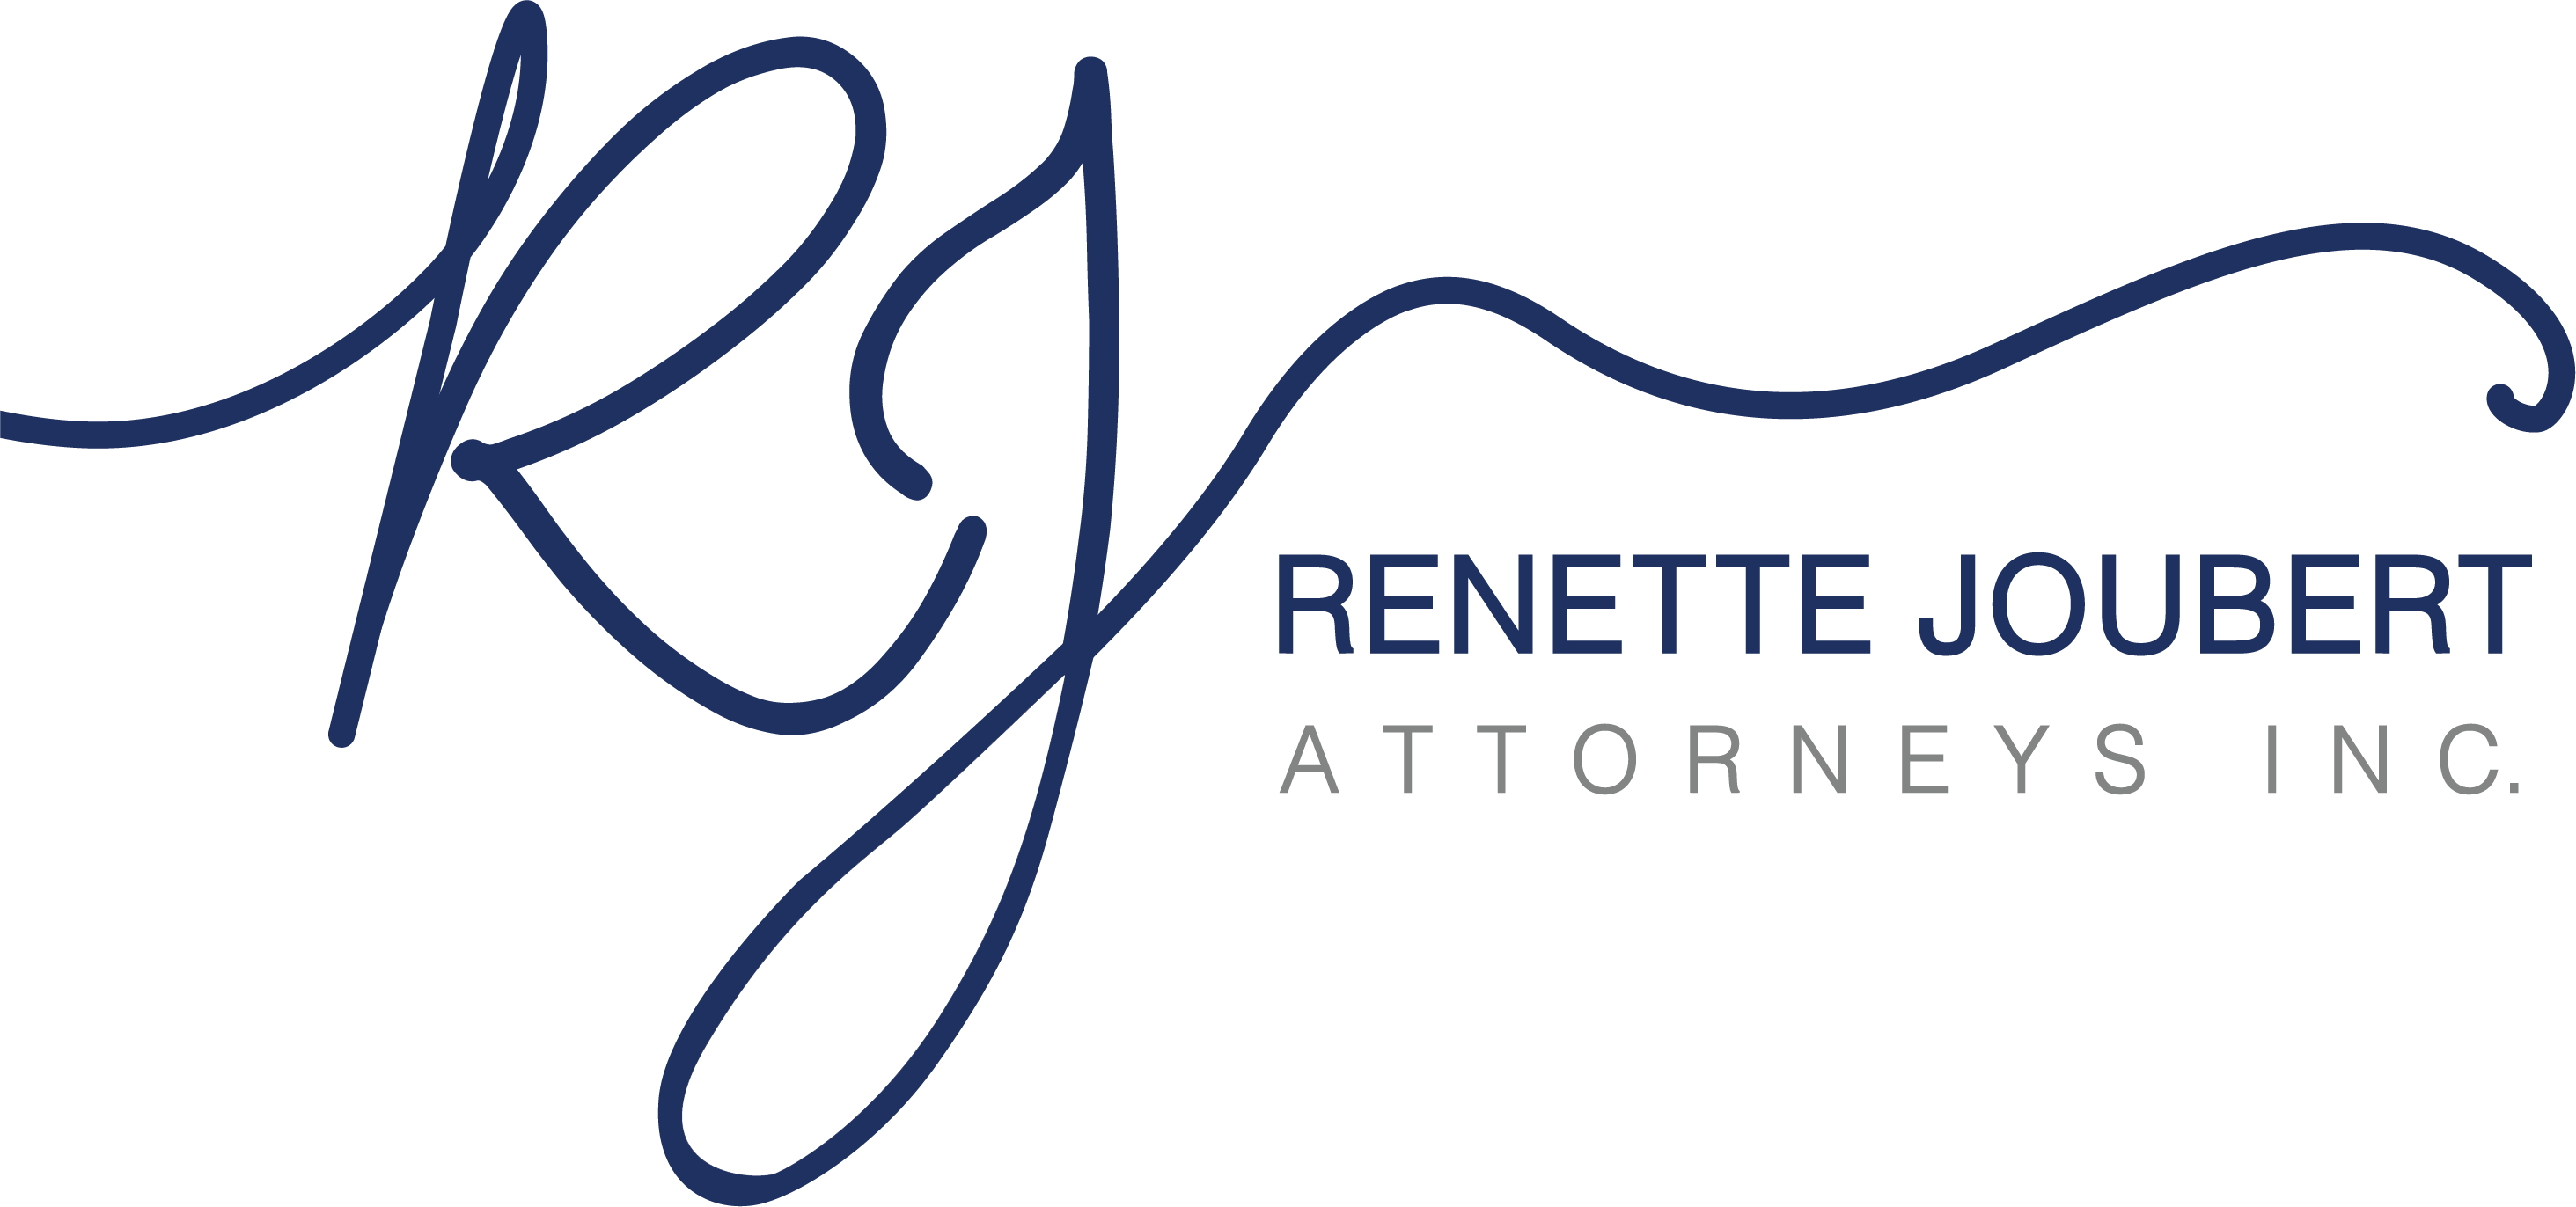 Renette Joubert Attorneys Inc.